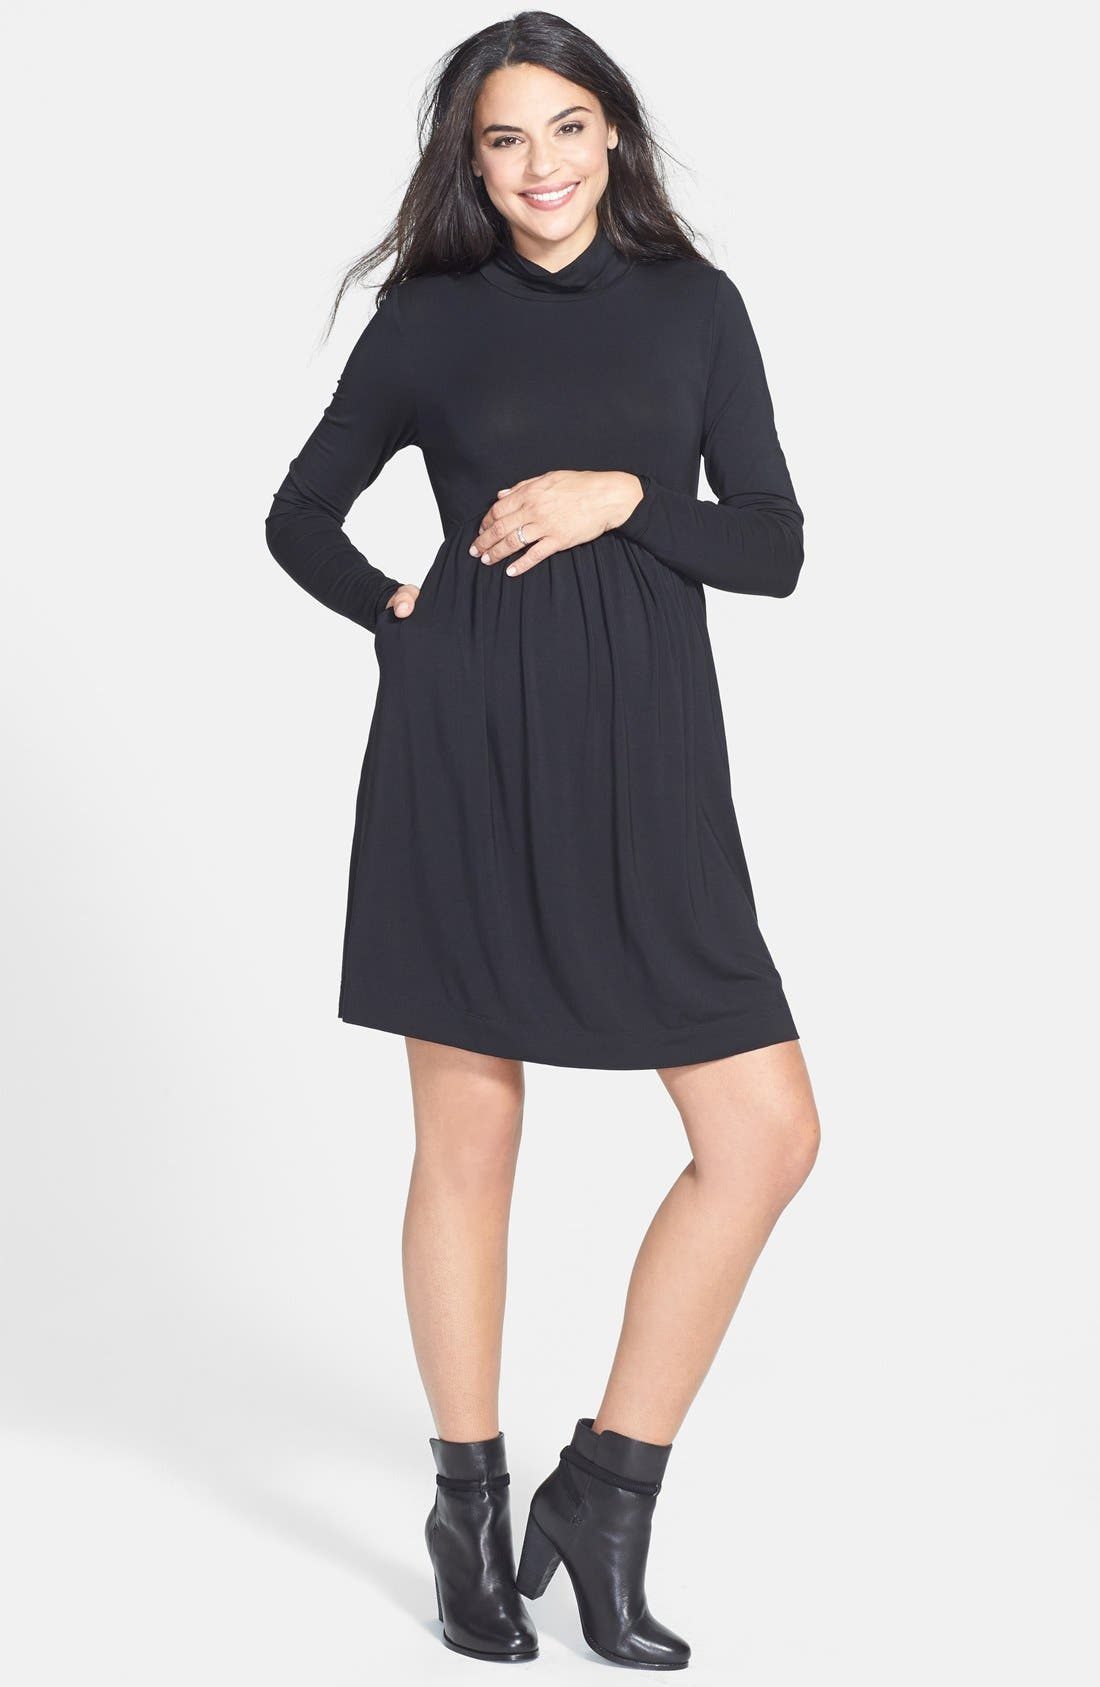 TART MATERNITY, 'Rhiannon' Turtleneck Fit & Flare Maternity Dress, Main thumbnail 1, color, BLACK